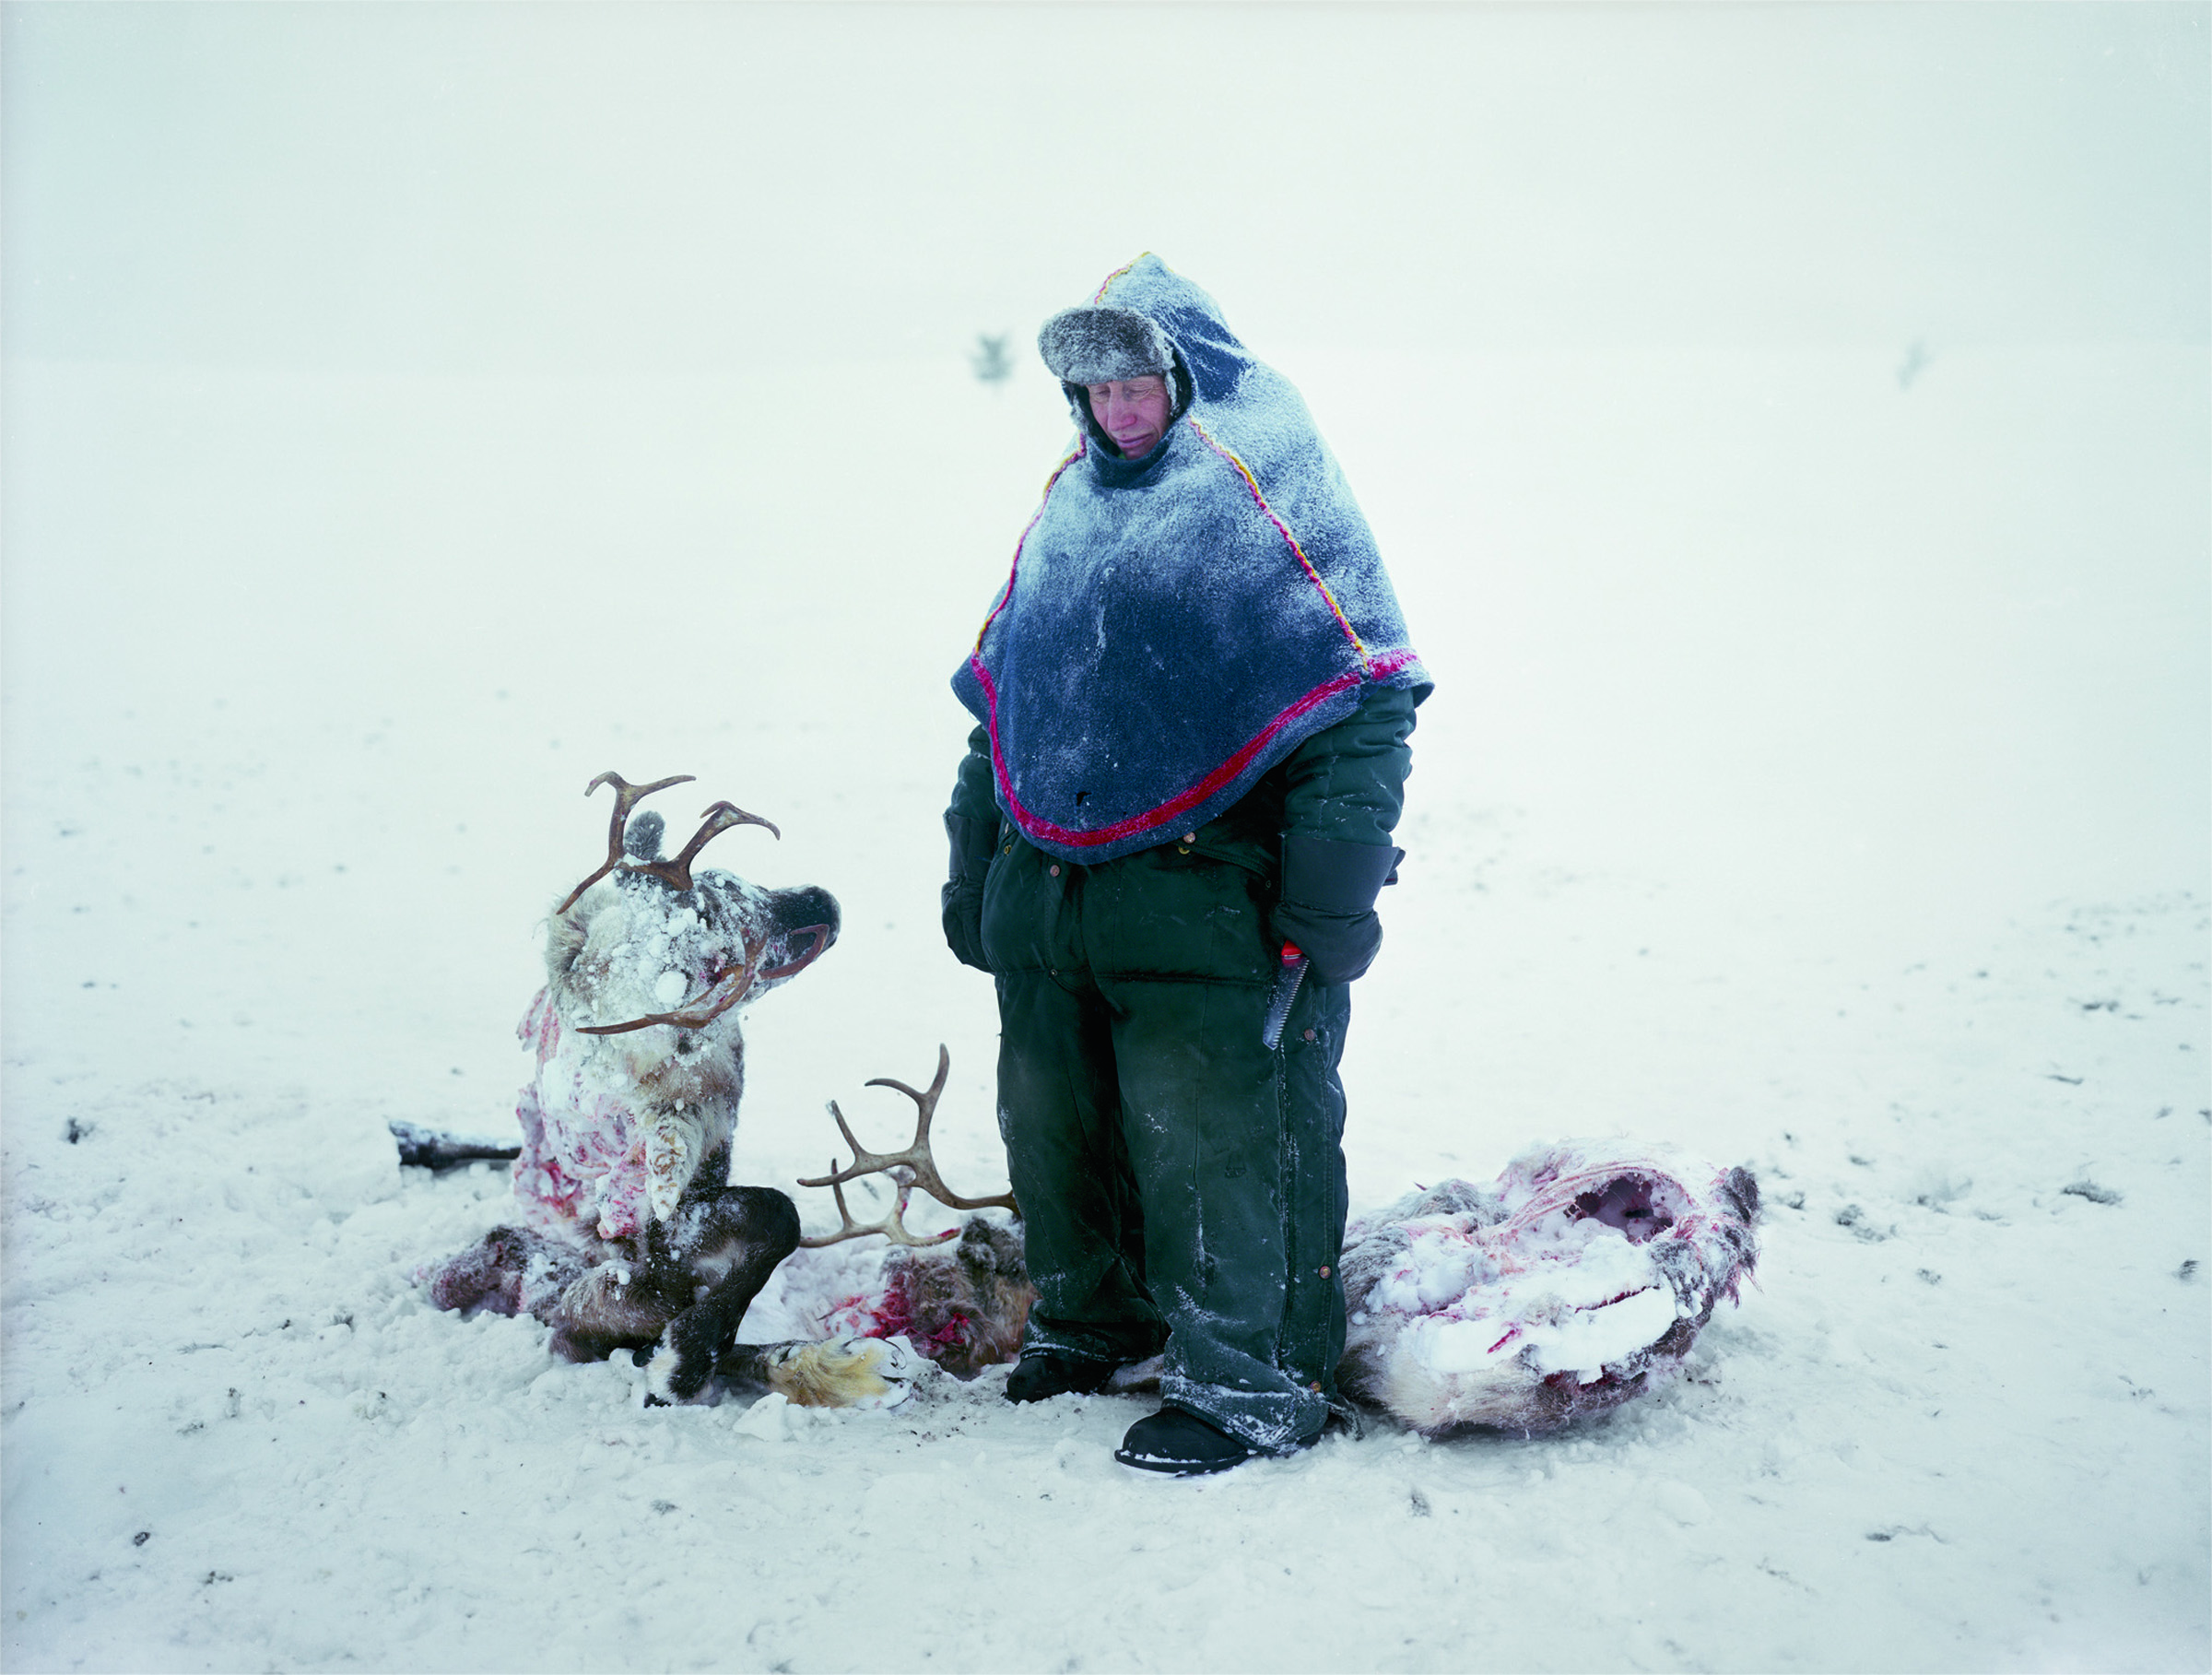 A Sami man in Sweden mourns the loss of two reindeer that starved after locking horns in a fight for dominance. Larsen lived with the man and his family for two years, working as their housekeeper.